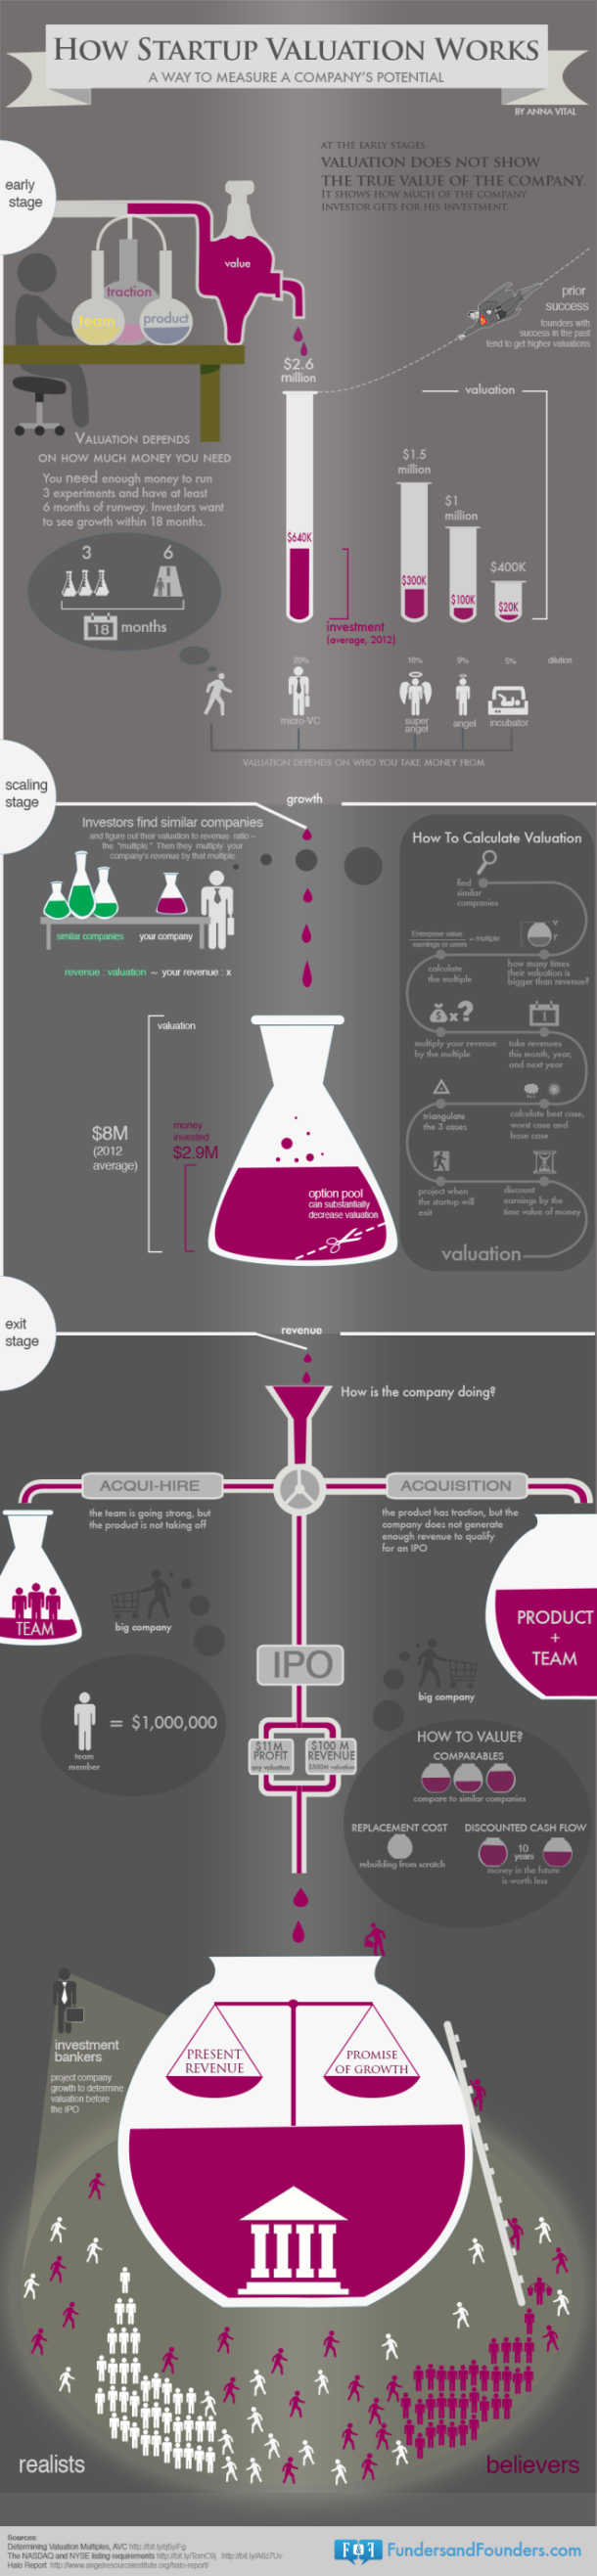 How Startup Valuation Works[INFOGRAPHIC]